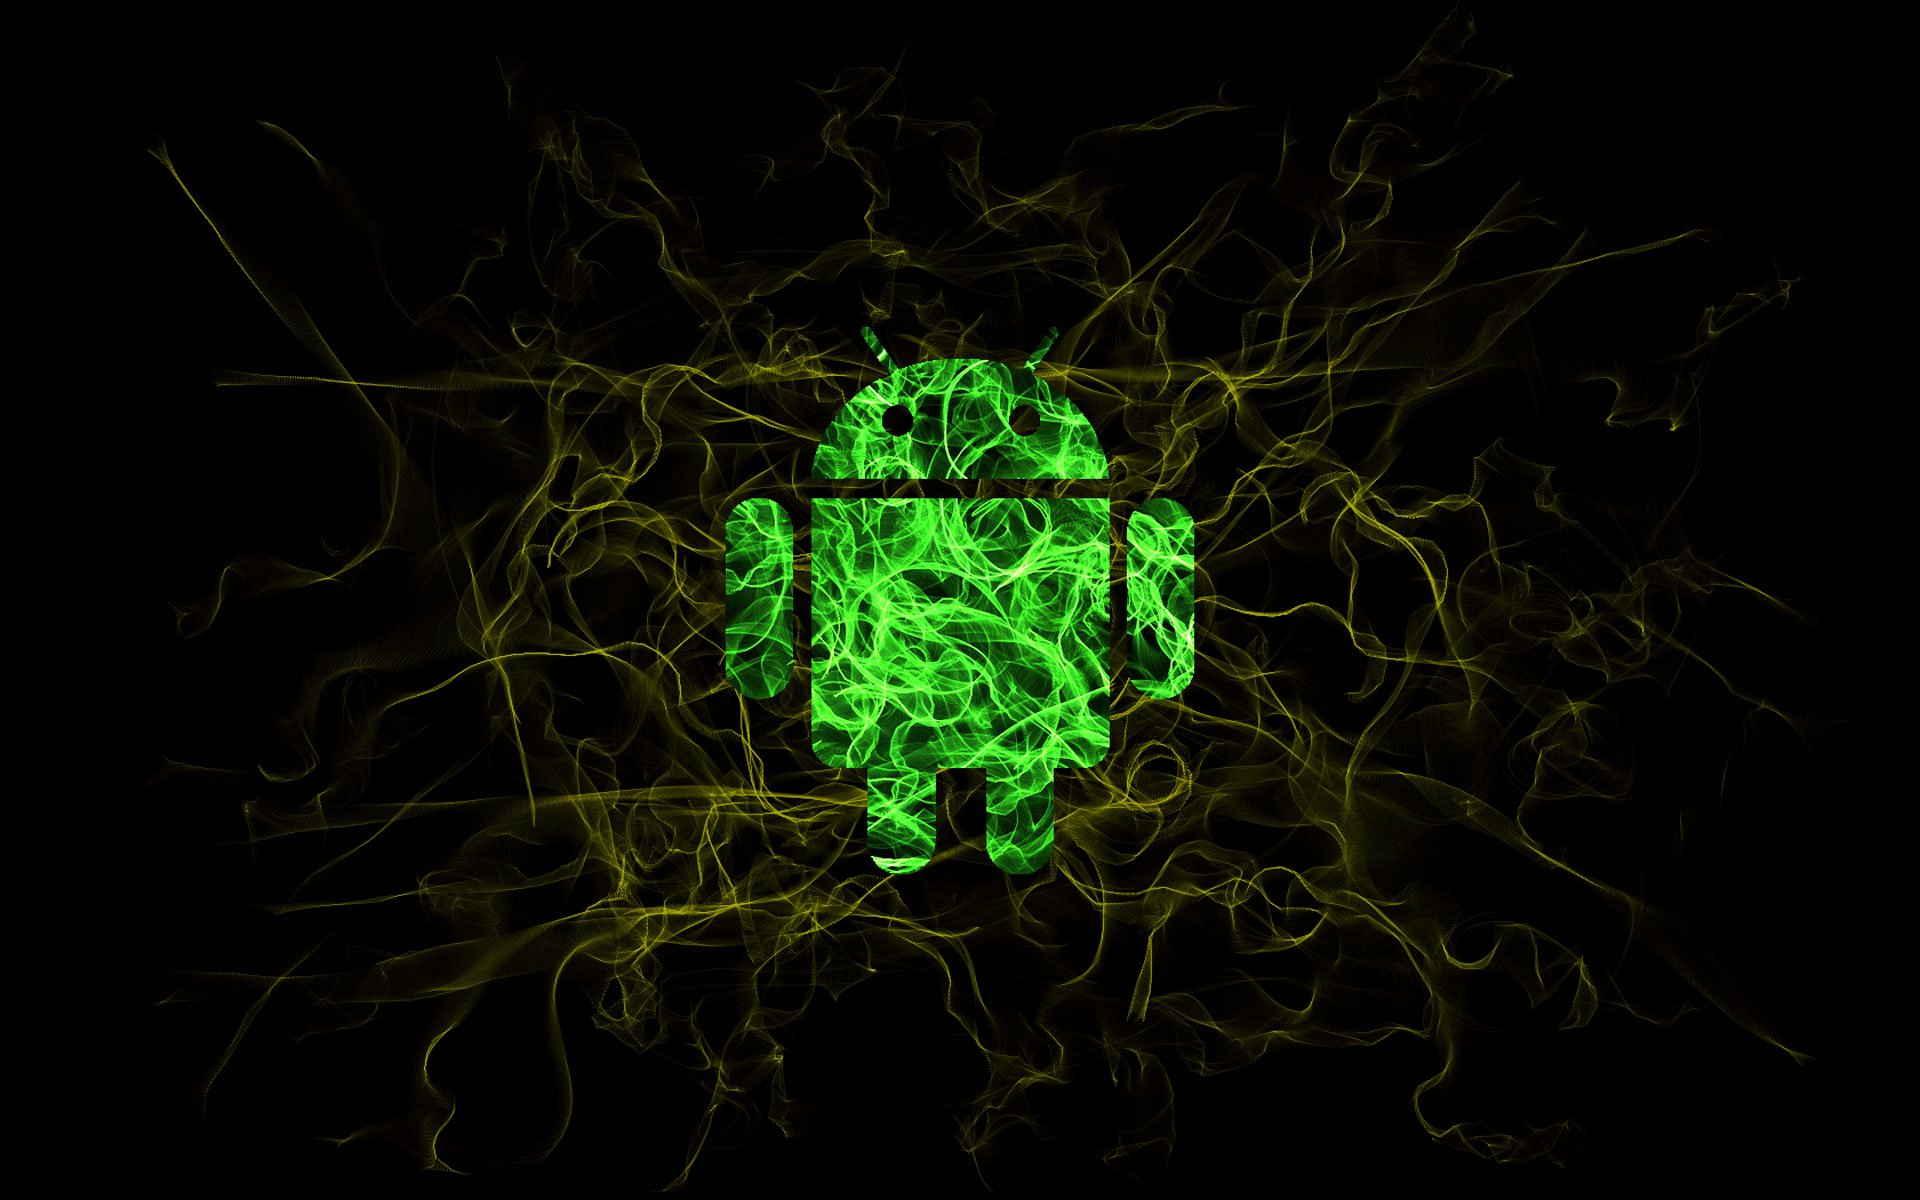 Android wallpapers download Toptenpackcom 1920x1200